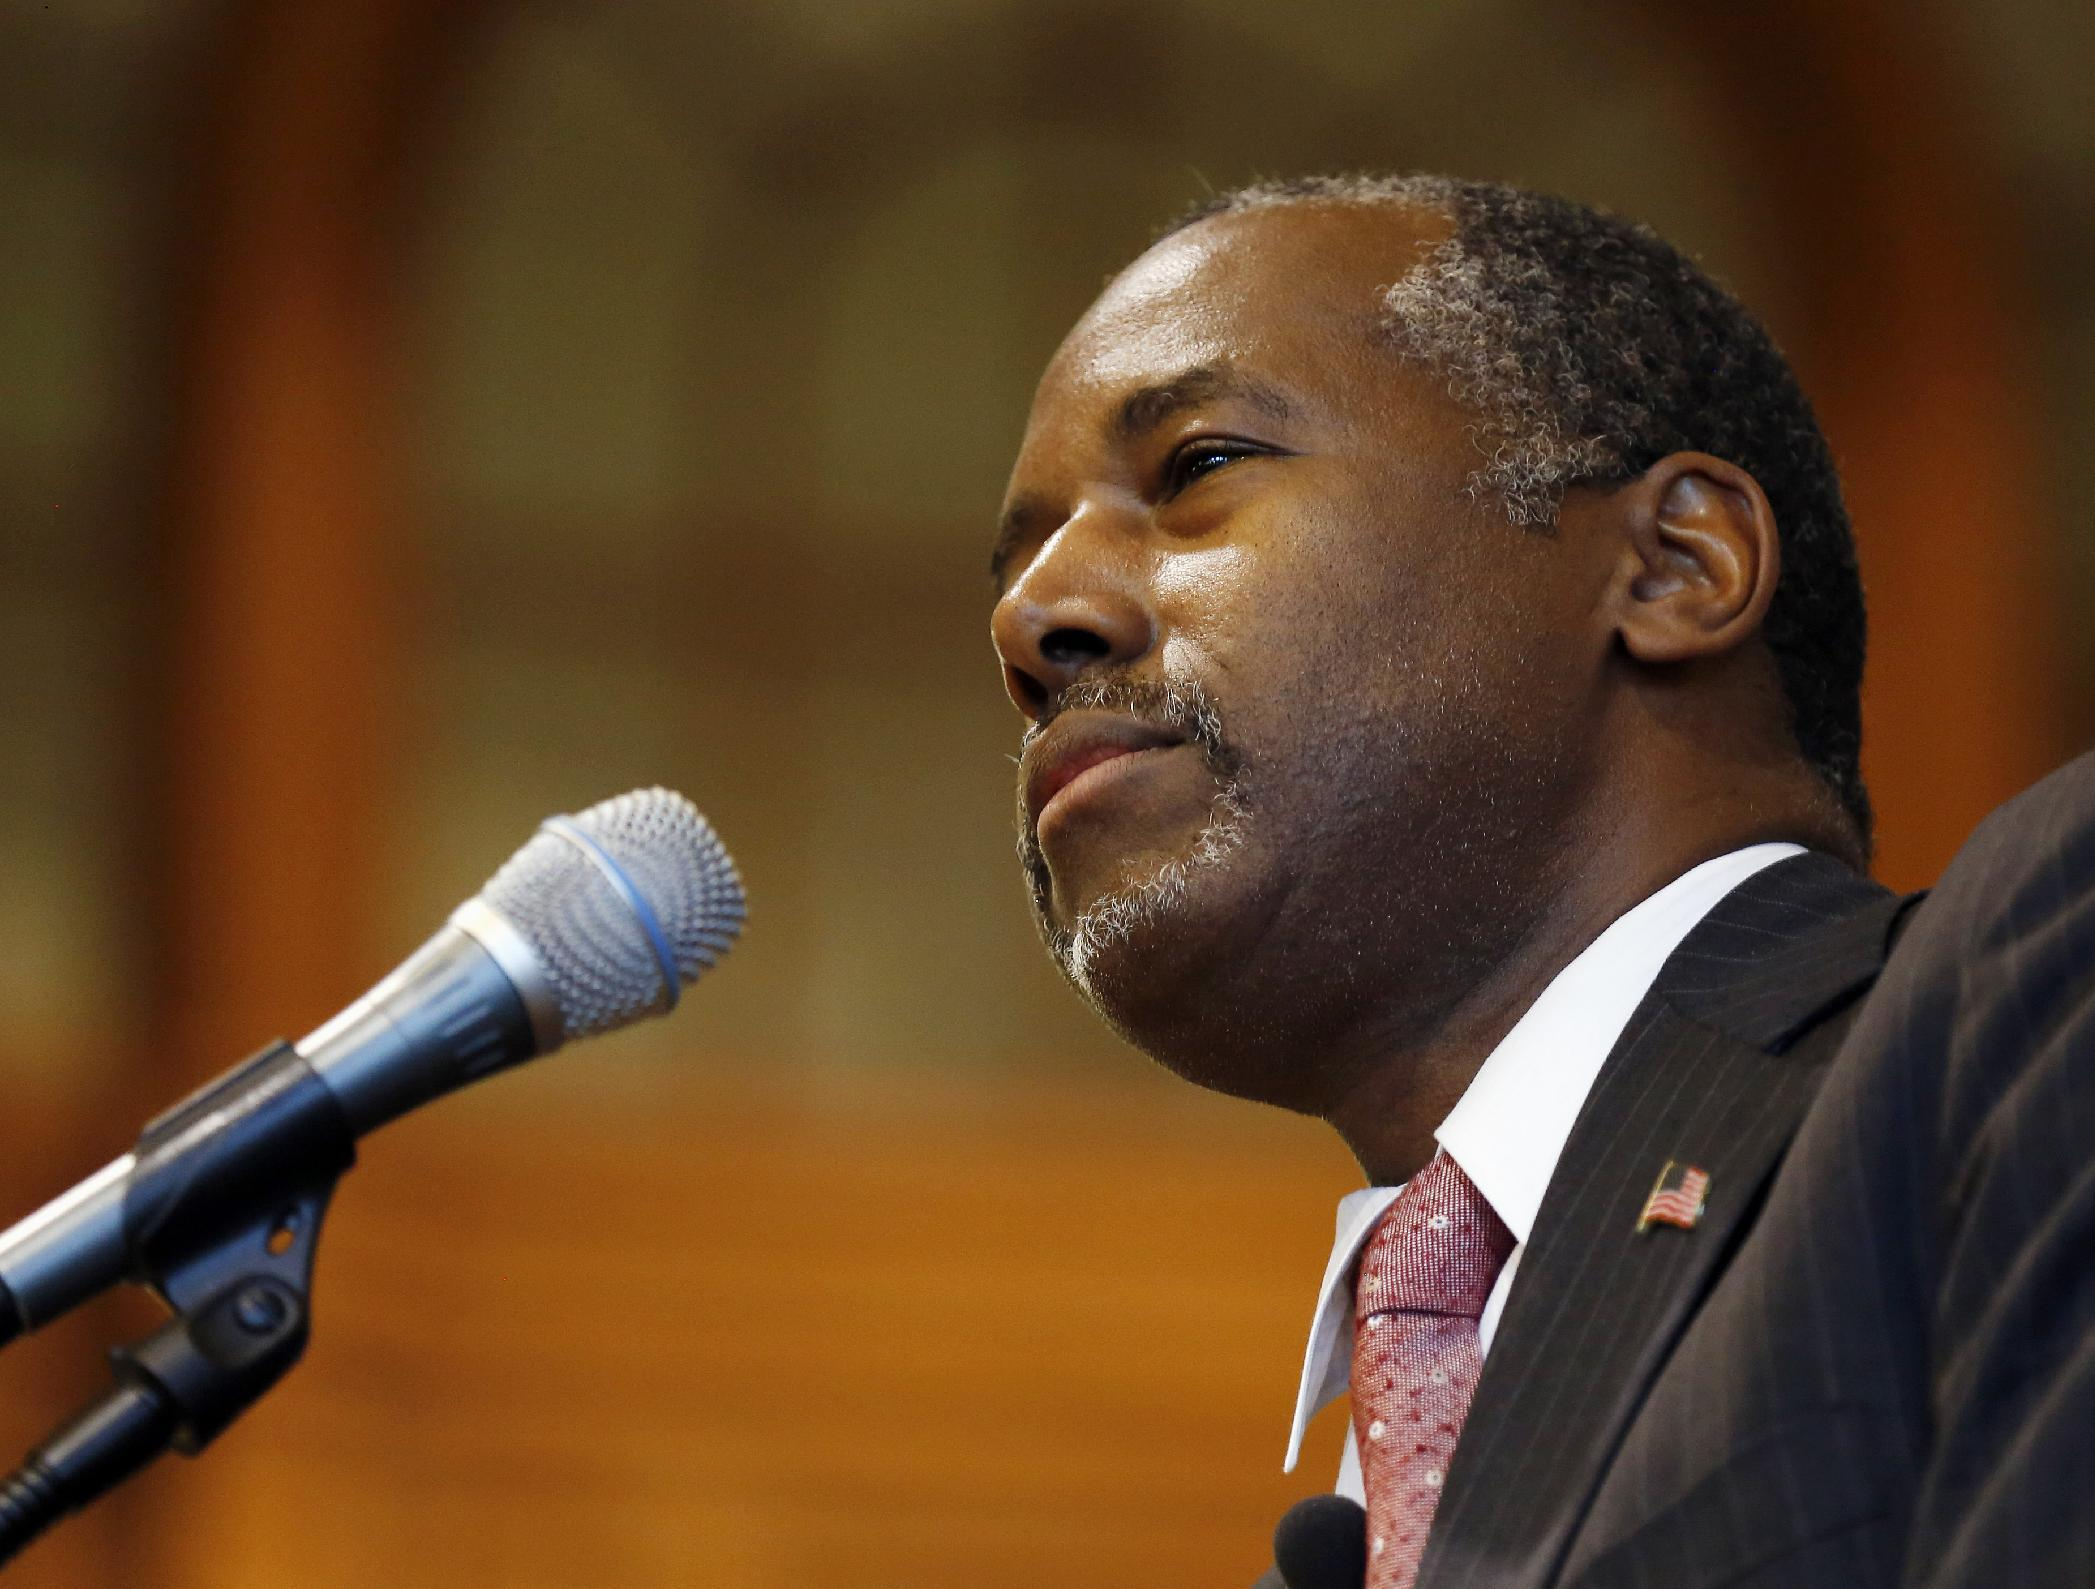 Republican hopeful Carson says no to Syrian refugees in US